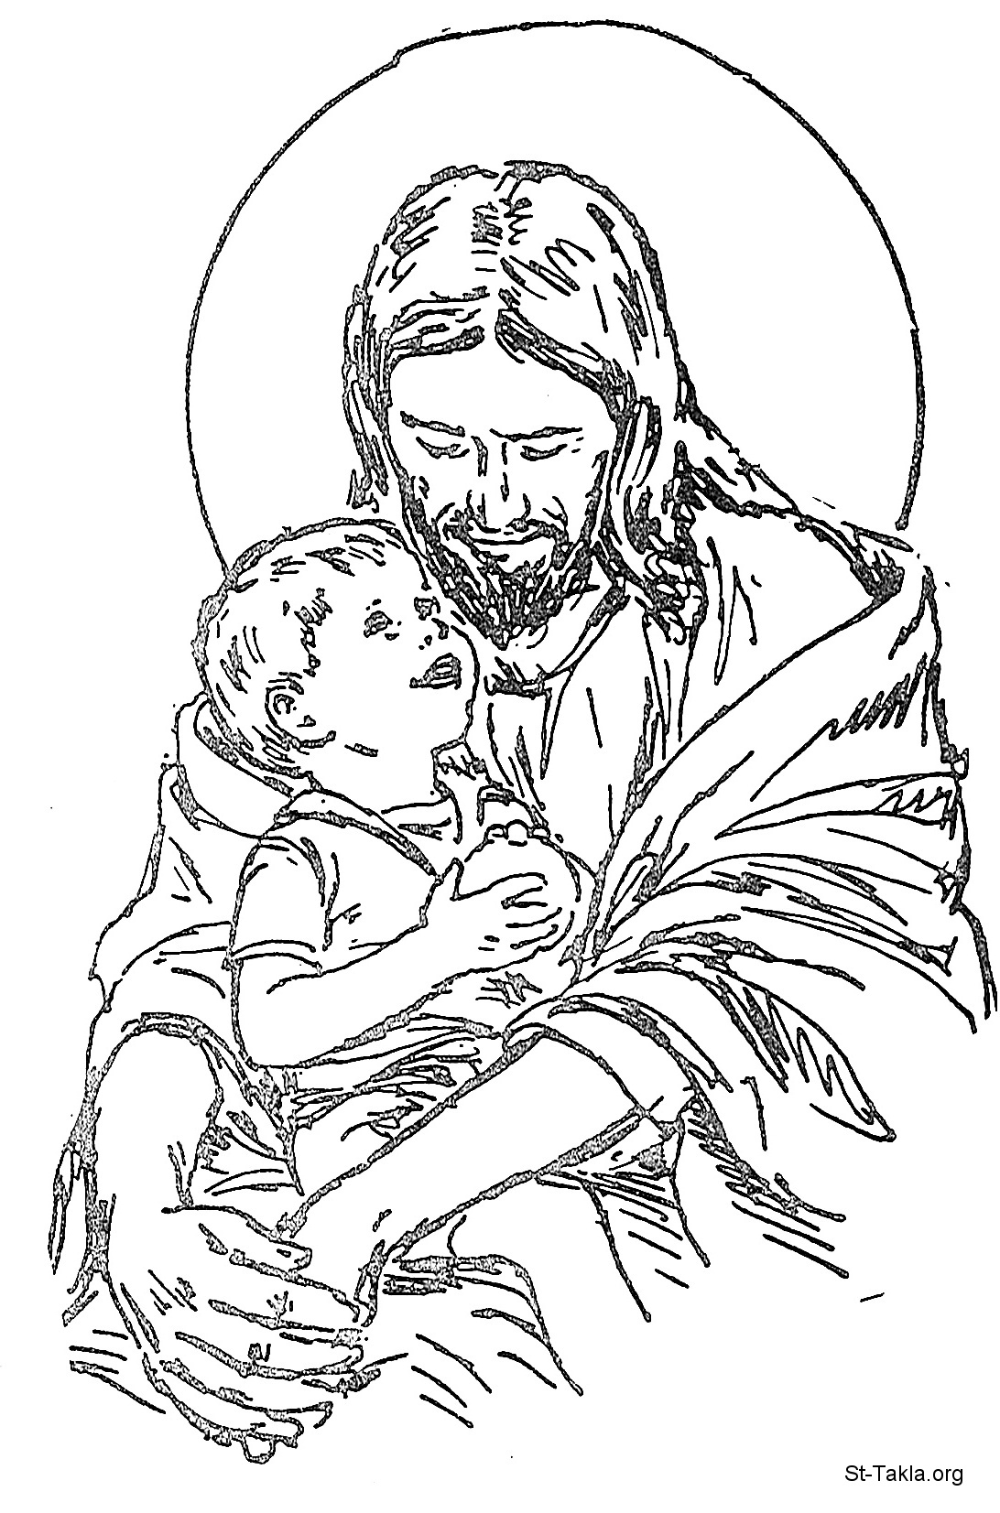 Jesus As King Coloring Page Coloring Pages, Christ The King Coloring Page - Radiokotha #halloweencoloringpages